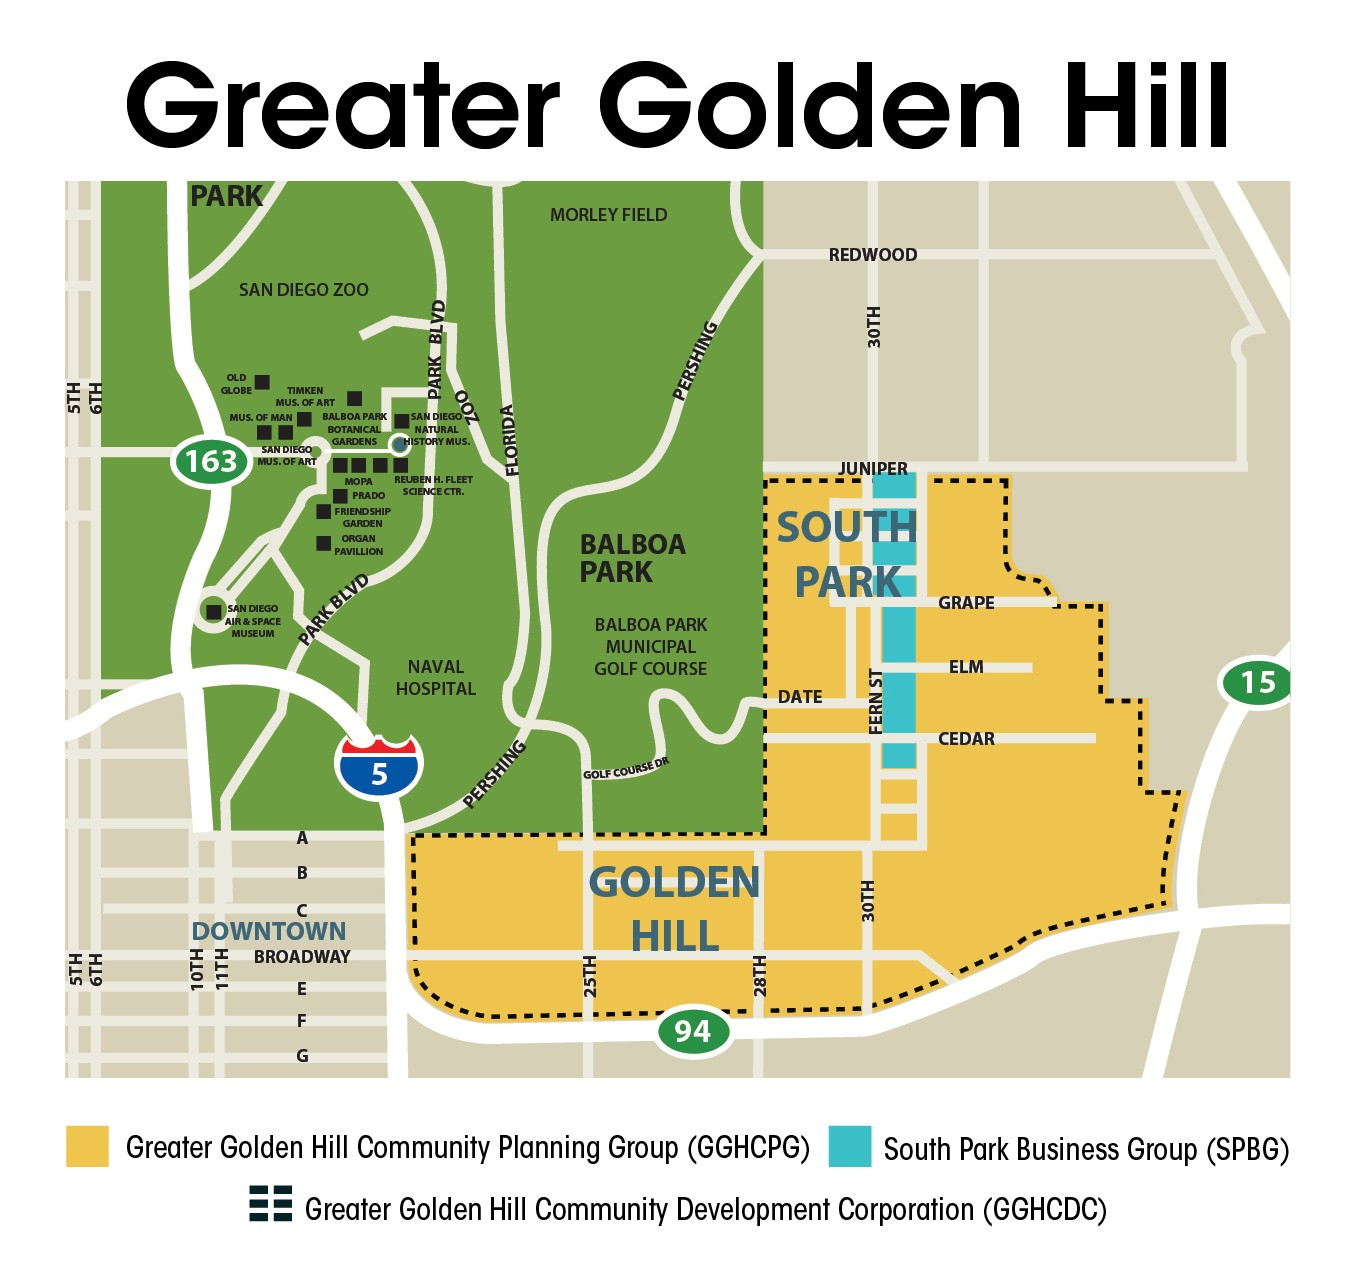 the community organizations of greater golden hill - san diego